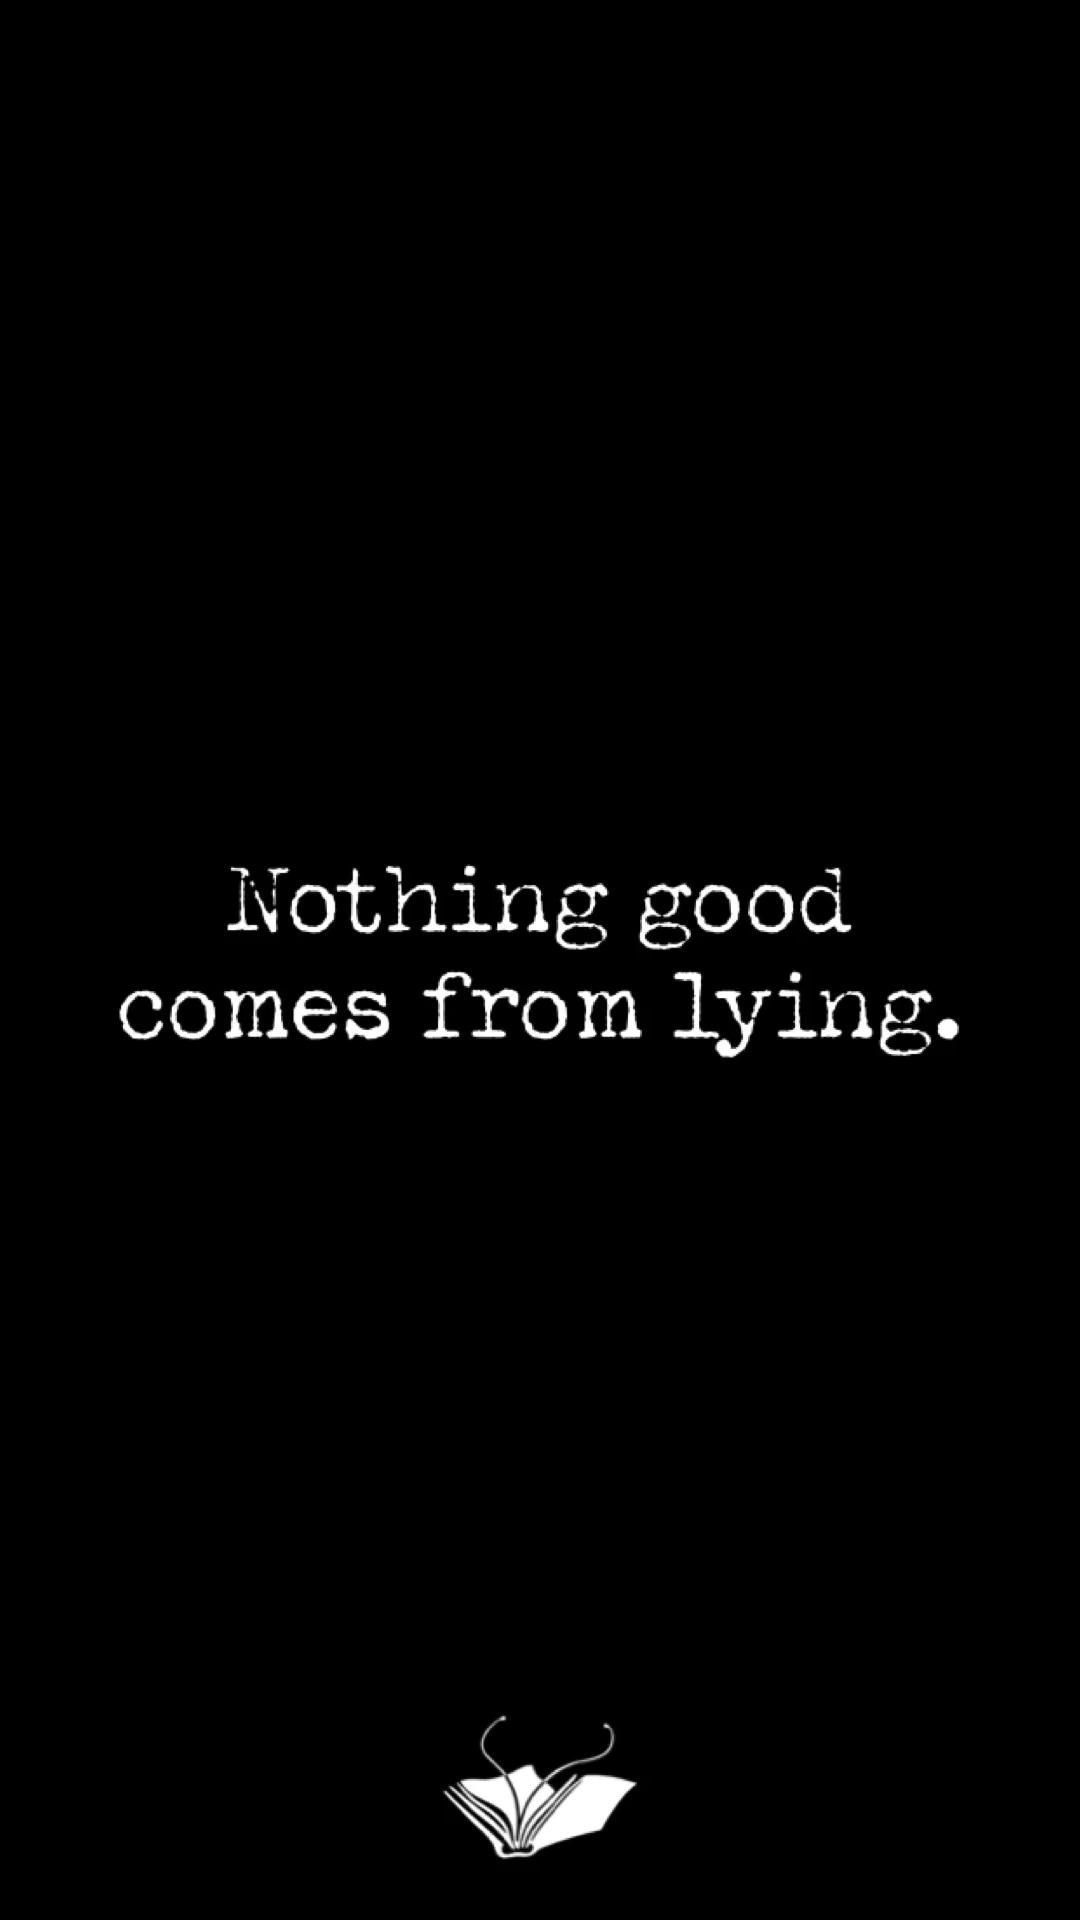 Nothing good comes from lying.